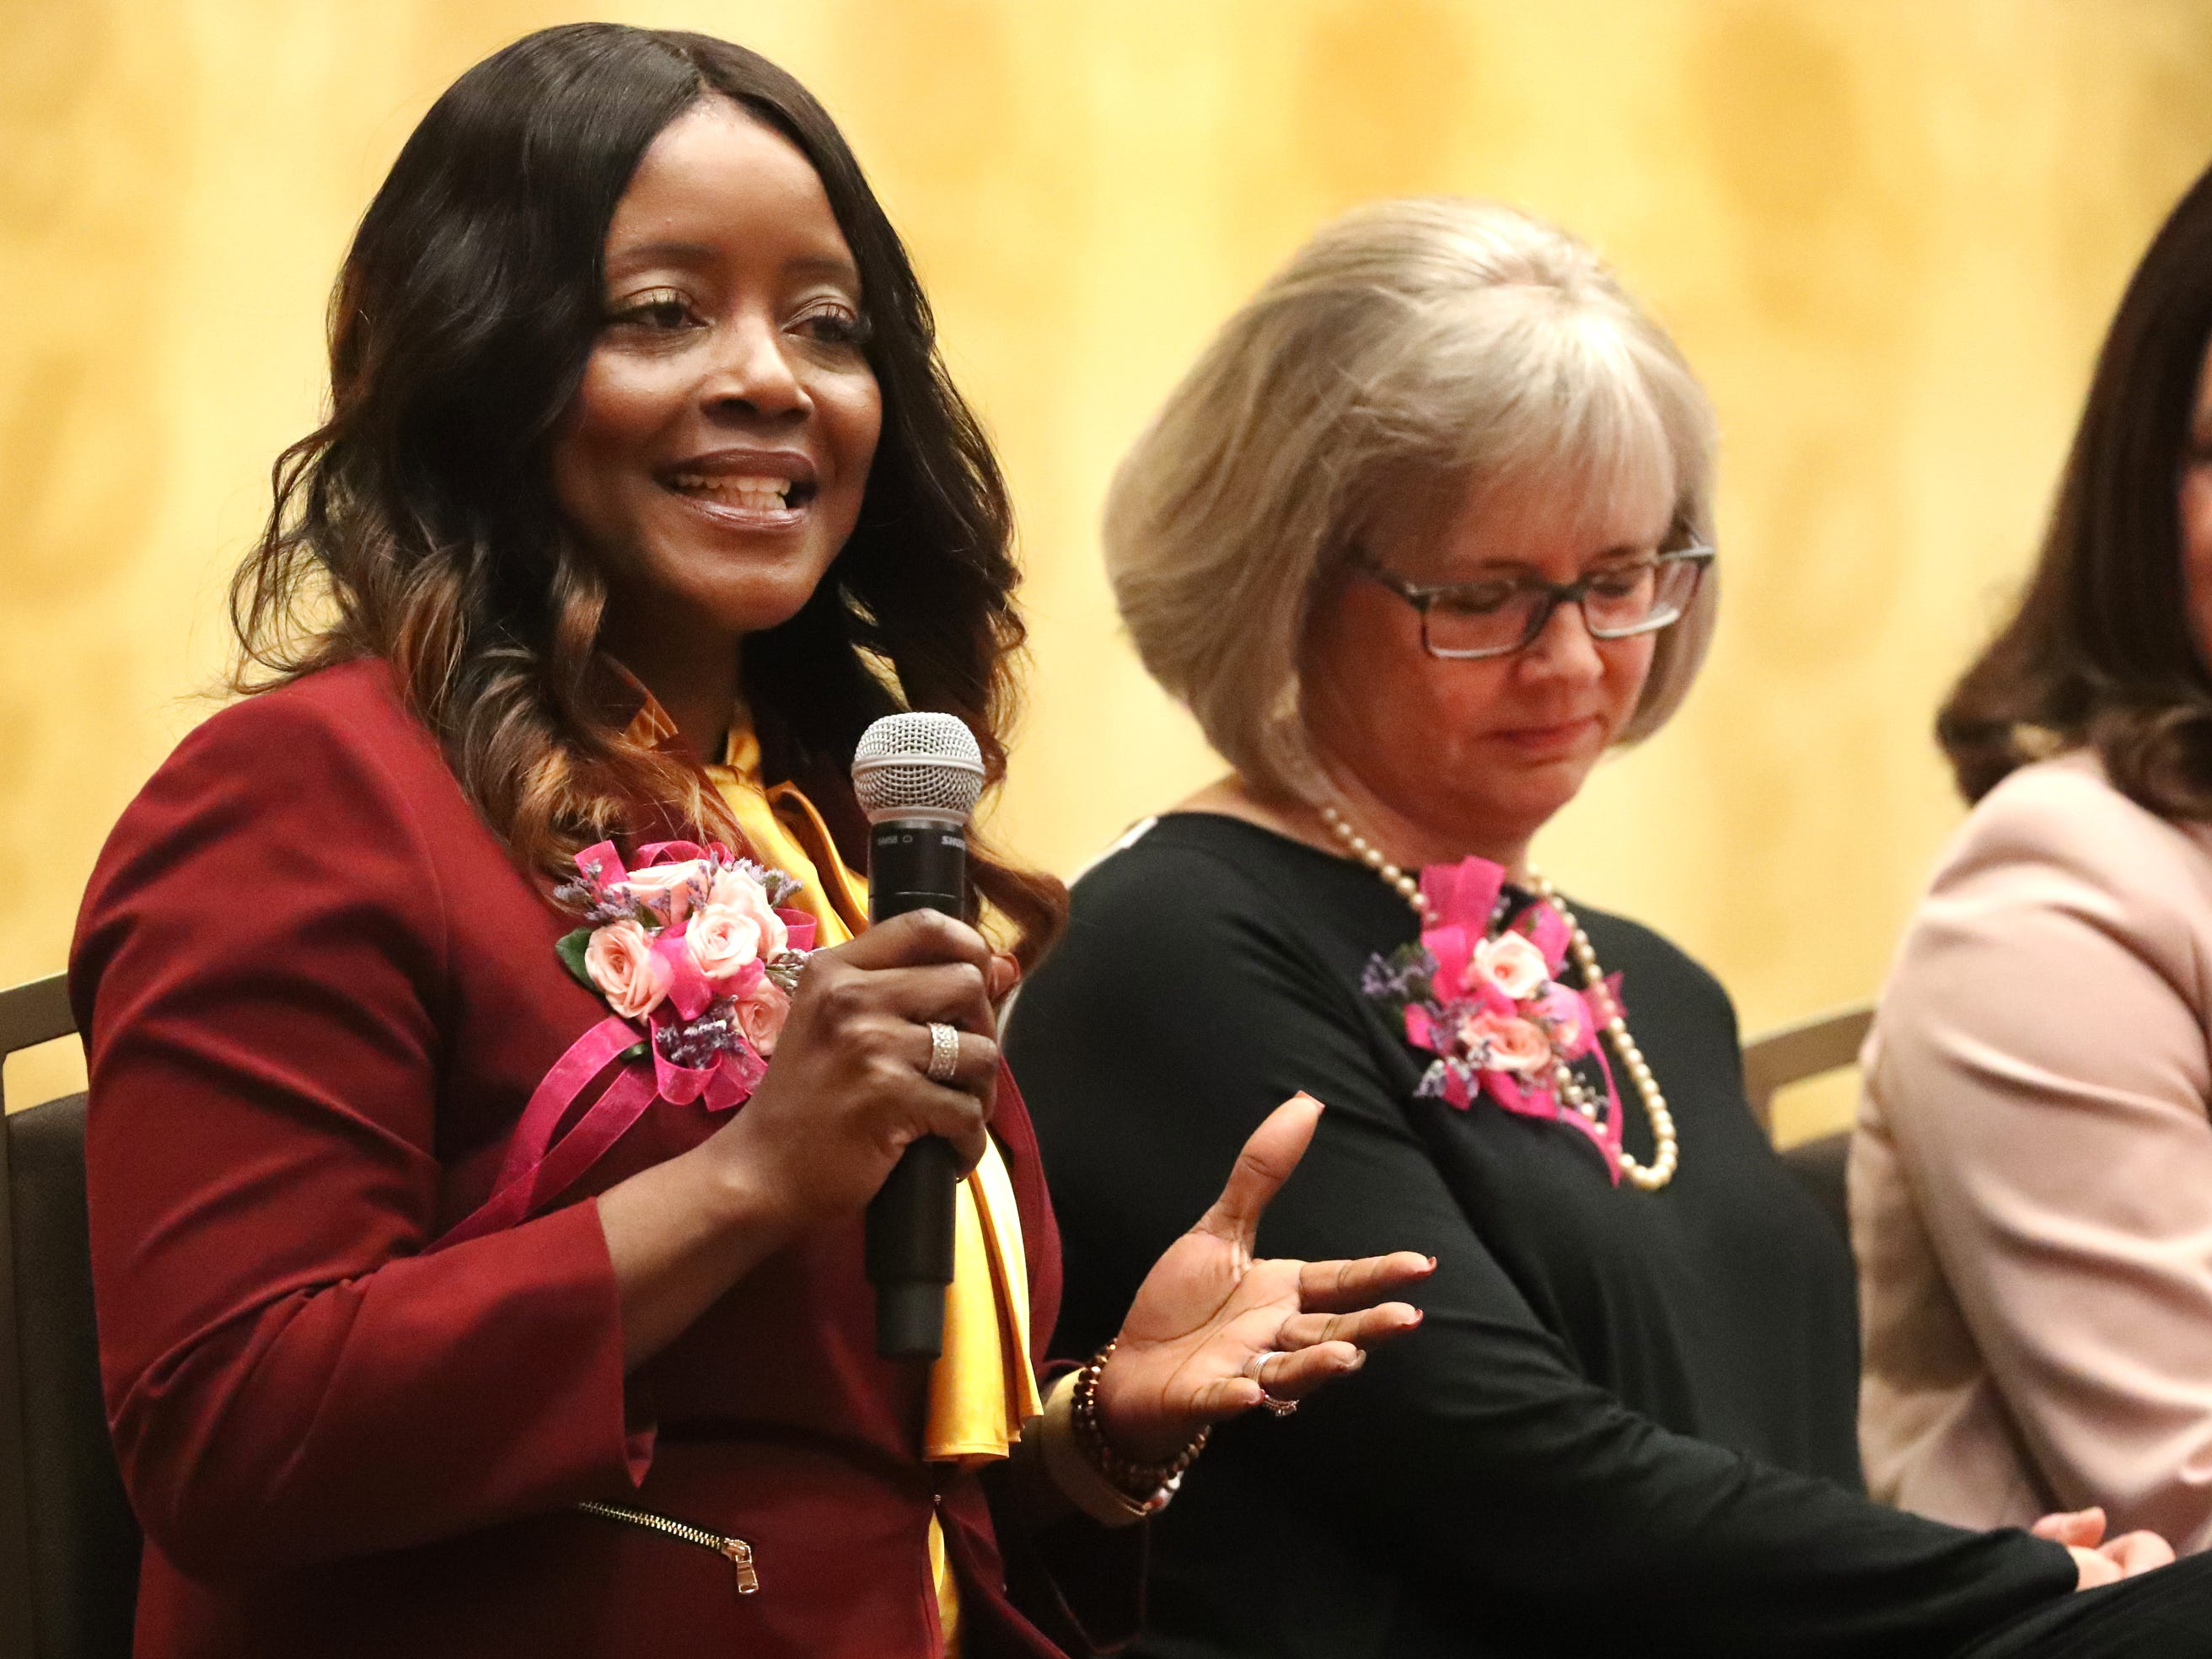 Honoree Novonda Lilly, Director of Talent Temp/Force and Executive Search at Vanderbilt University Medical Center, answers questions during the Murfreesboro Magazine's 2019 Women in Business Luncheon on Tuesday, March 12, 2019, at the Embassy Suites Murfreesboro.